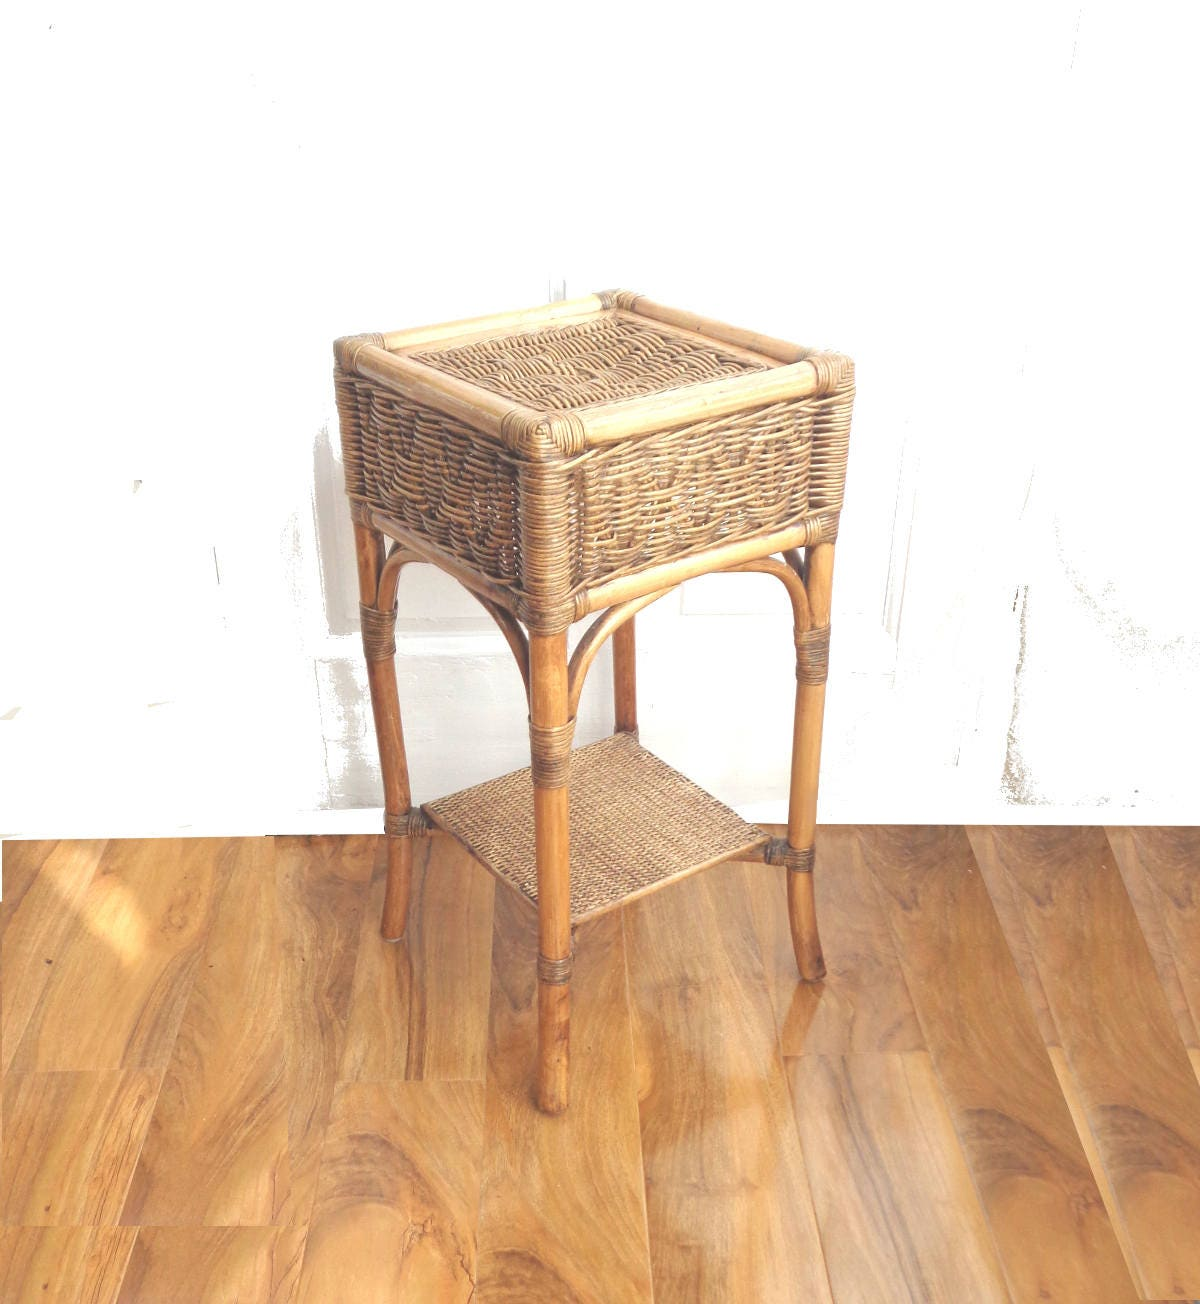 Vintage 1970s Wicker Amp Bamboo Side Table Plant Stand Shabby